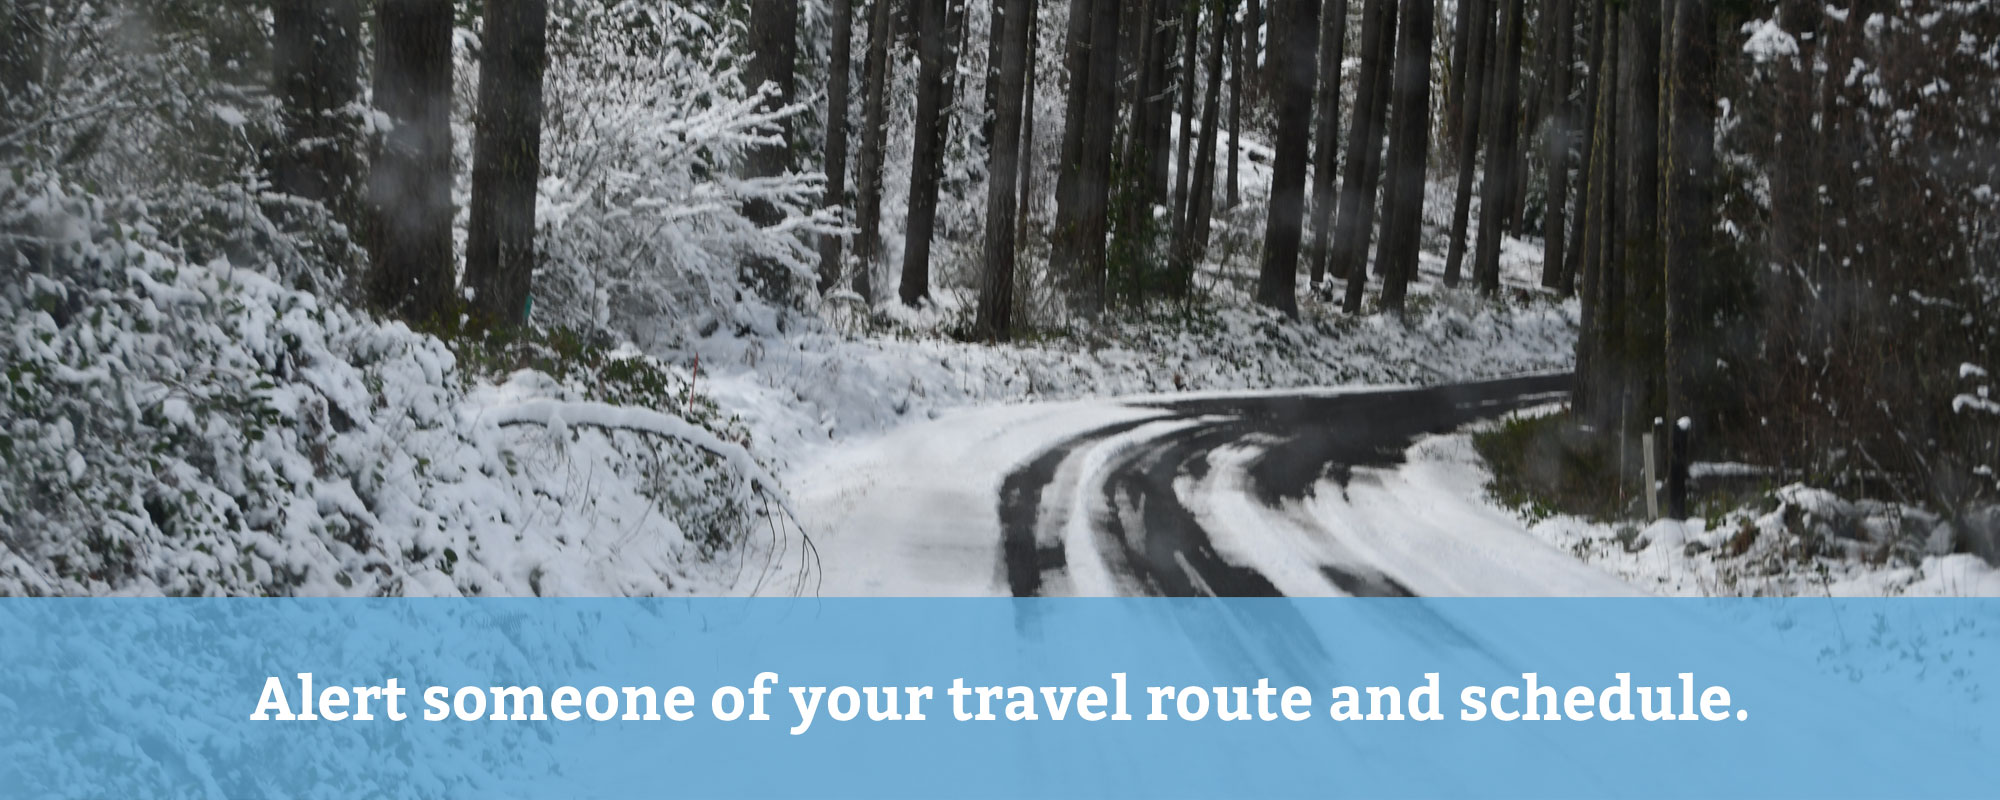 Alert someone of your travel route and schedule.